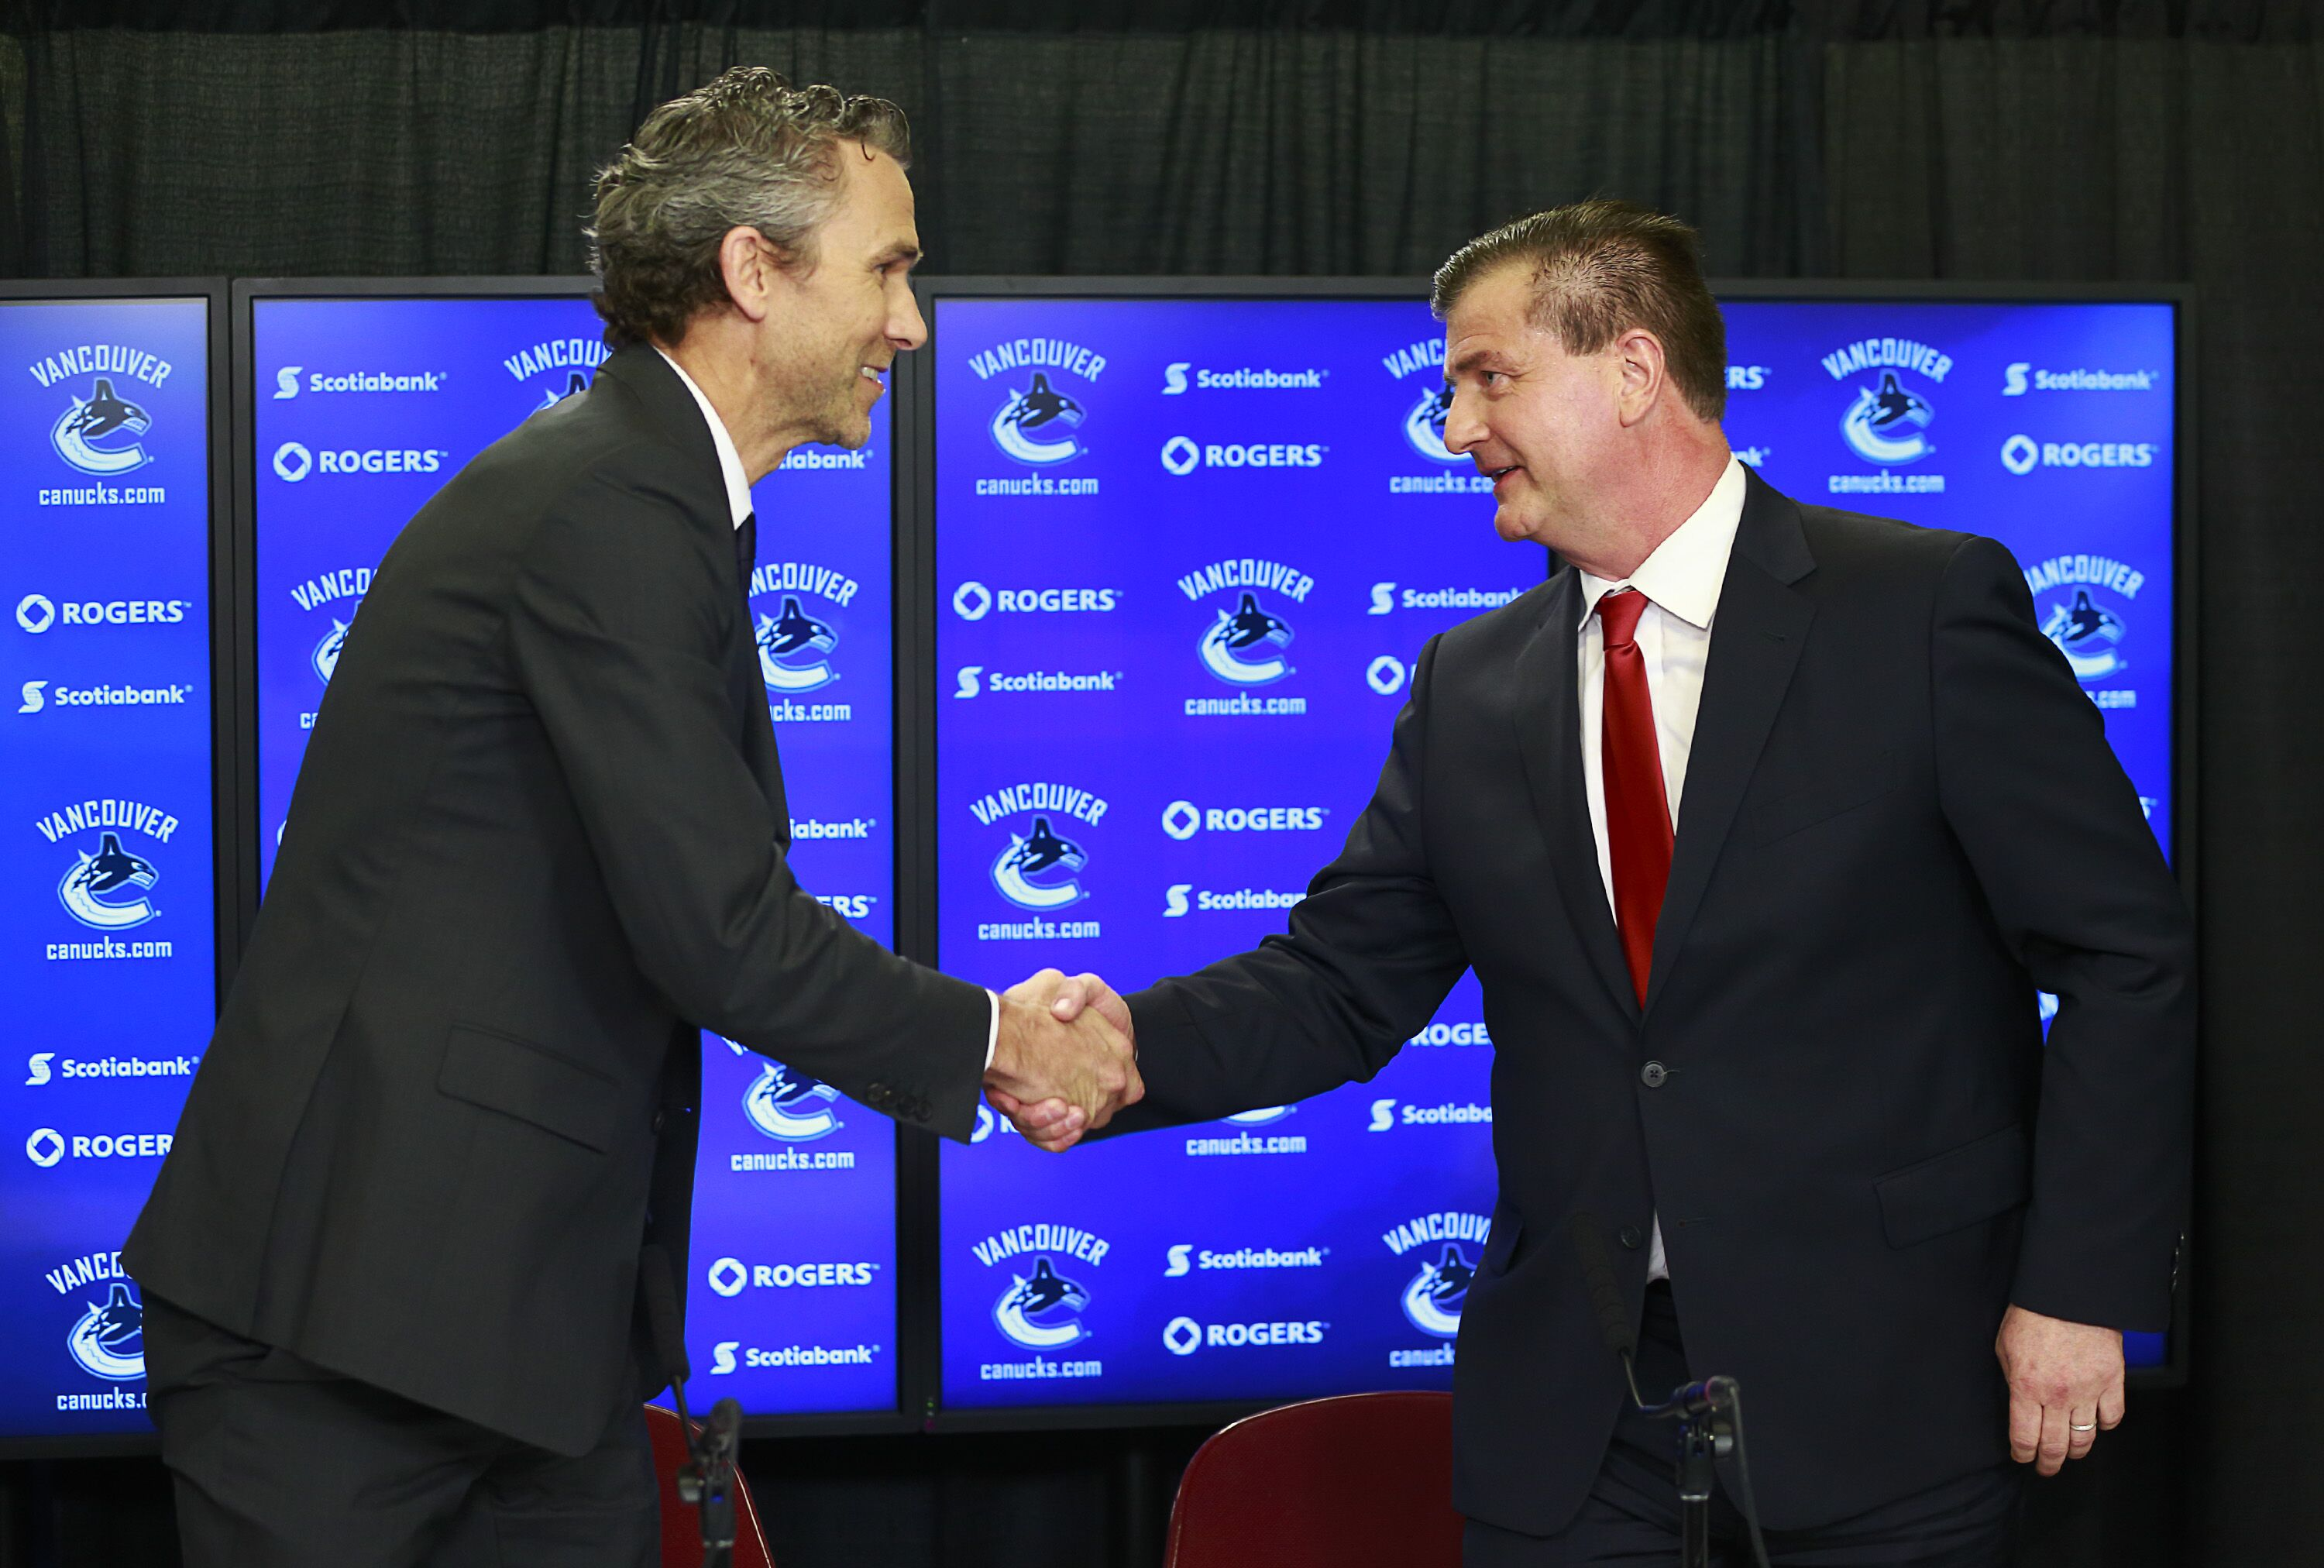 493368299-vancouver-canucks-announce-jim-benning-as-general-manager.jpg